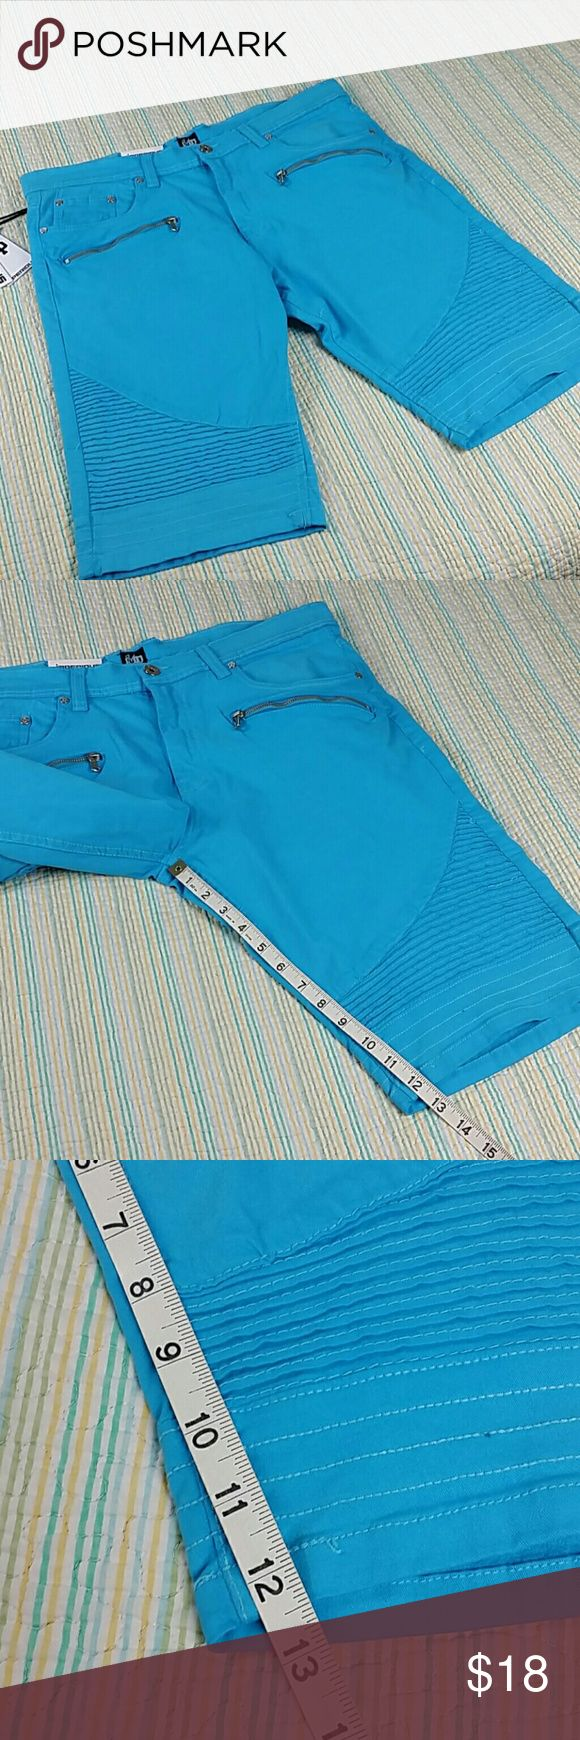 NWT Imperious Size 34 Moto Biker Rib Detailed Aqua NWT Imperious Size 34 Moto Biker Rib Detailed 7 Pocket Mens Shorts Aqua Blue $70 Imperious Shorts Flat Front